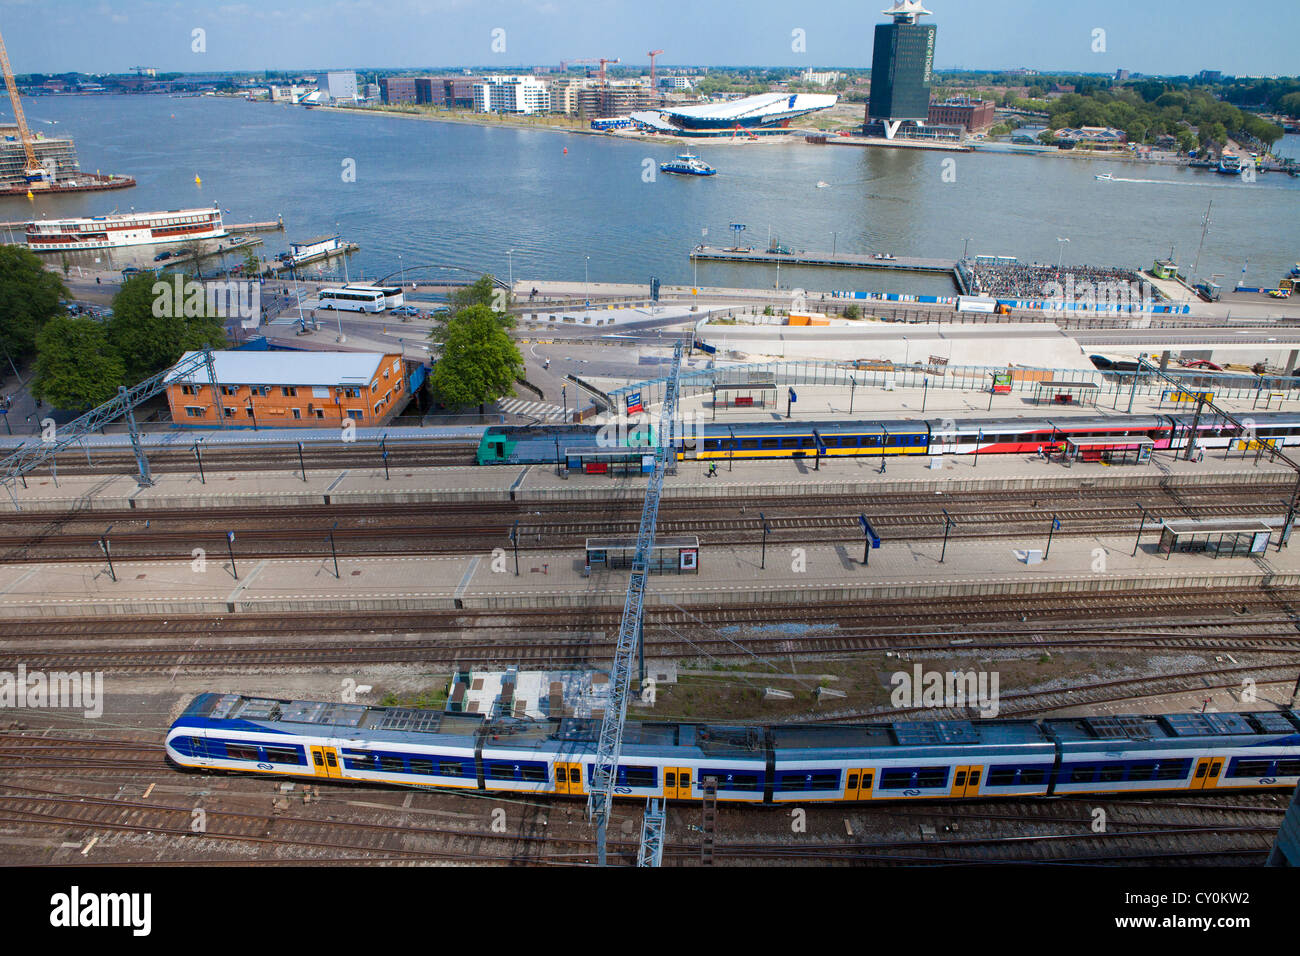 Amsterdam train station - Stock Image